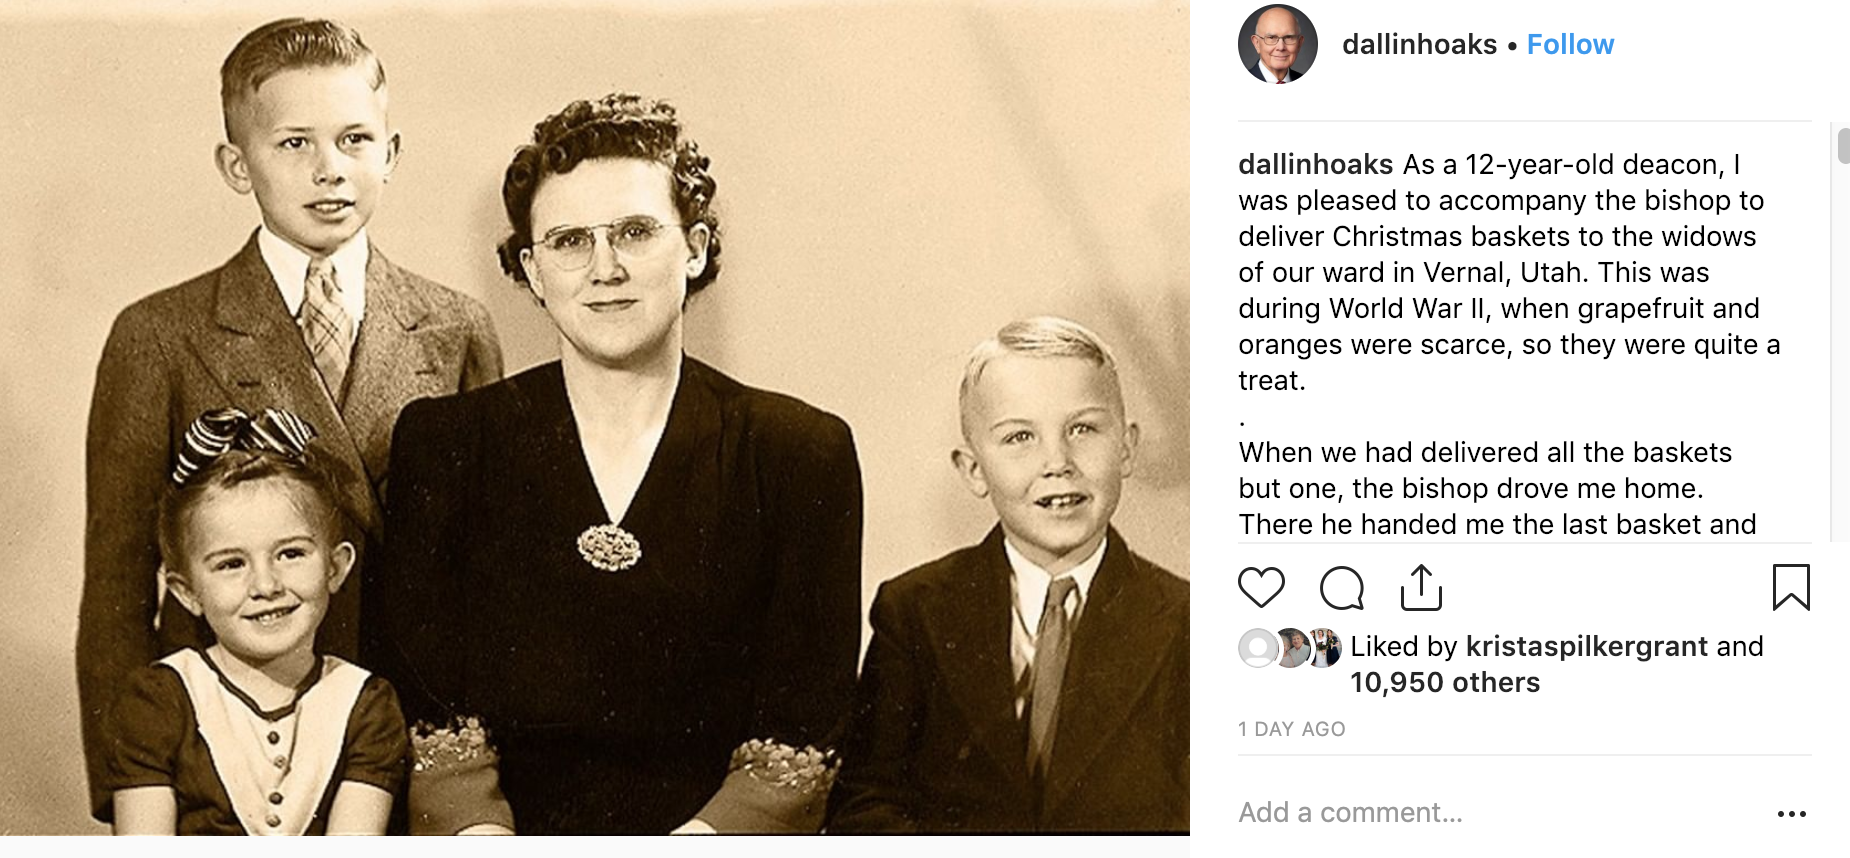 President Dallin H. Oaks shared a Christmas memory on Instagram of when he was a boy delivering Christmas baskets to widows and he didn't realize his own mother was a widow. In the post, he testified of Heavenly Father's plan of happiness and of eternal families.